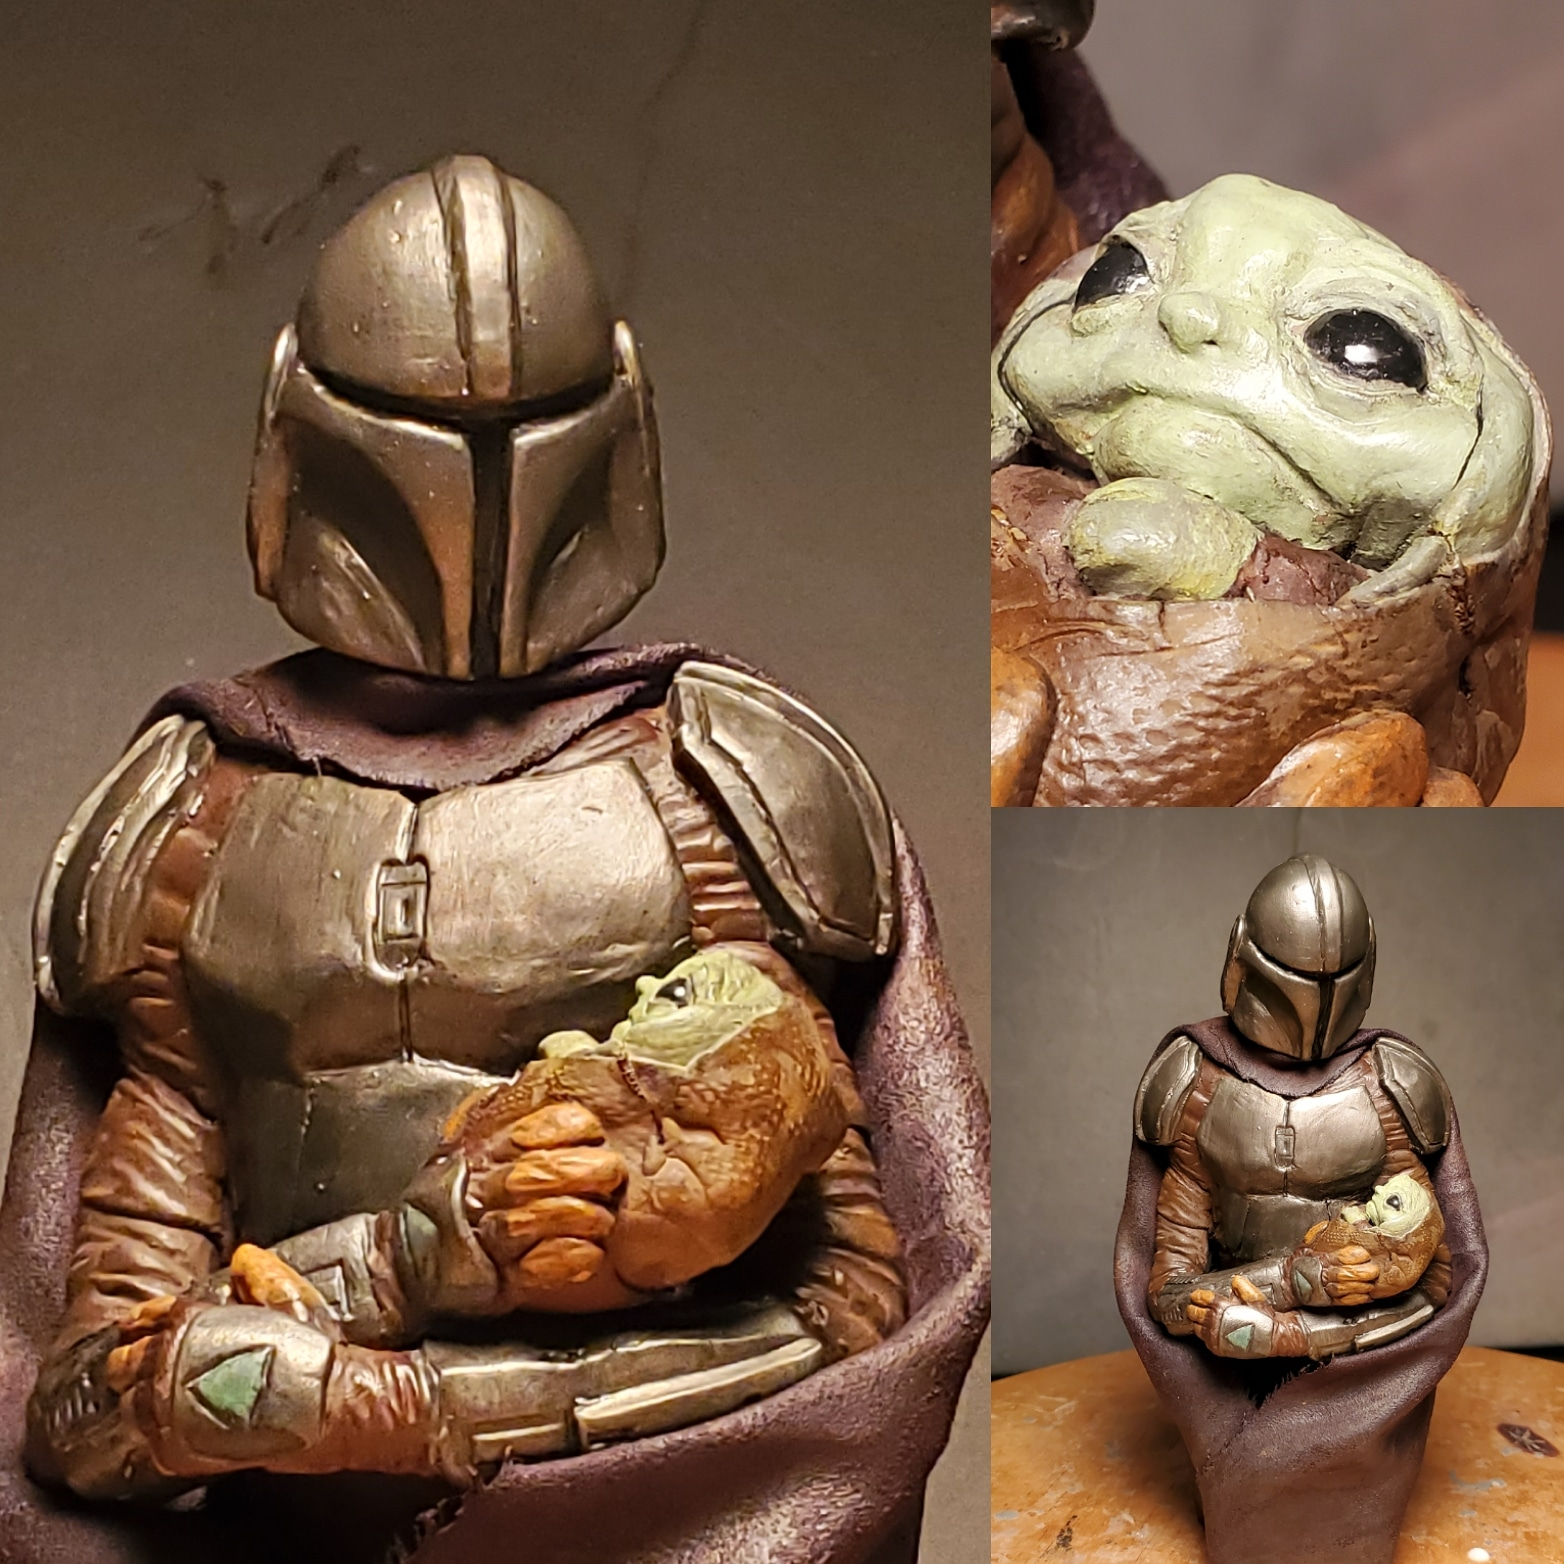 My Mandalorian and The Child sculpture.